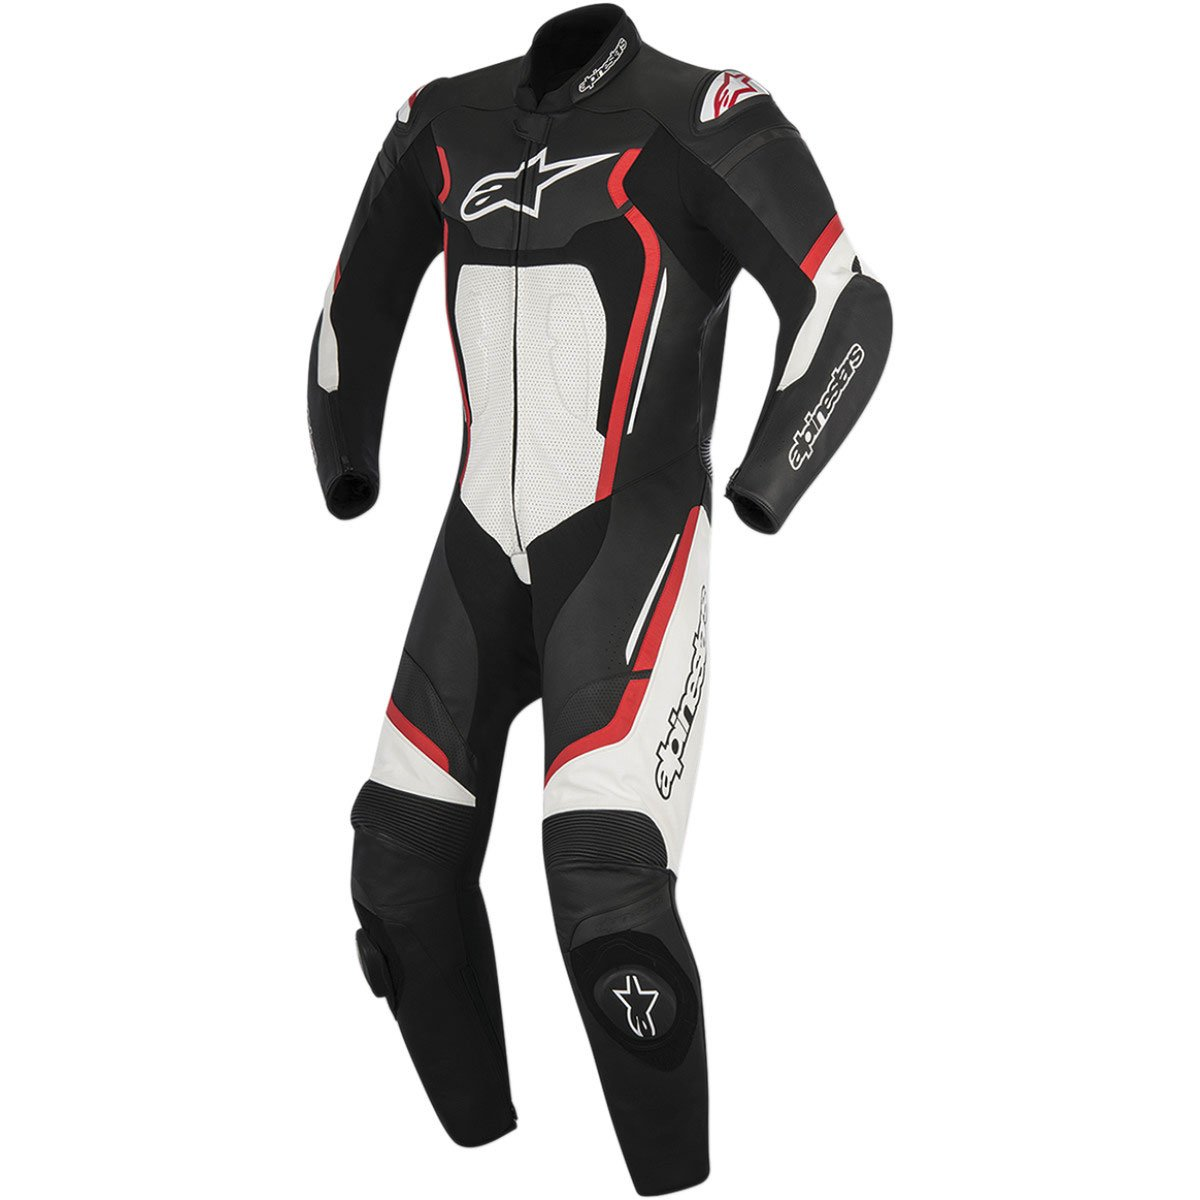 Alpinestars Montegi V2 Men's 1-Piece Street Motorcycle Race Suits - Black/Red/White / 52